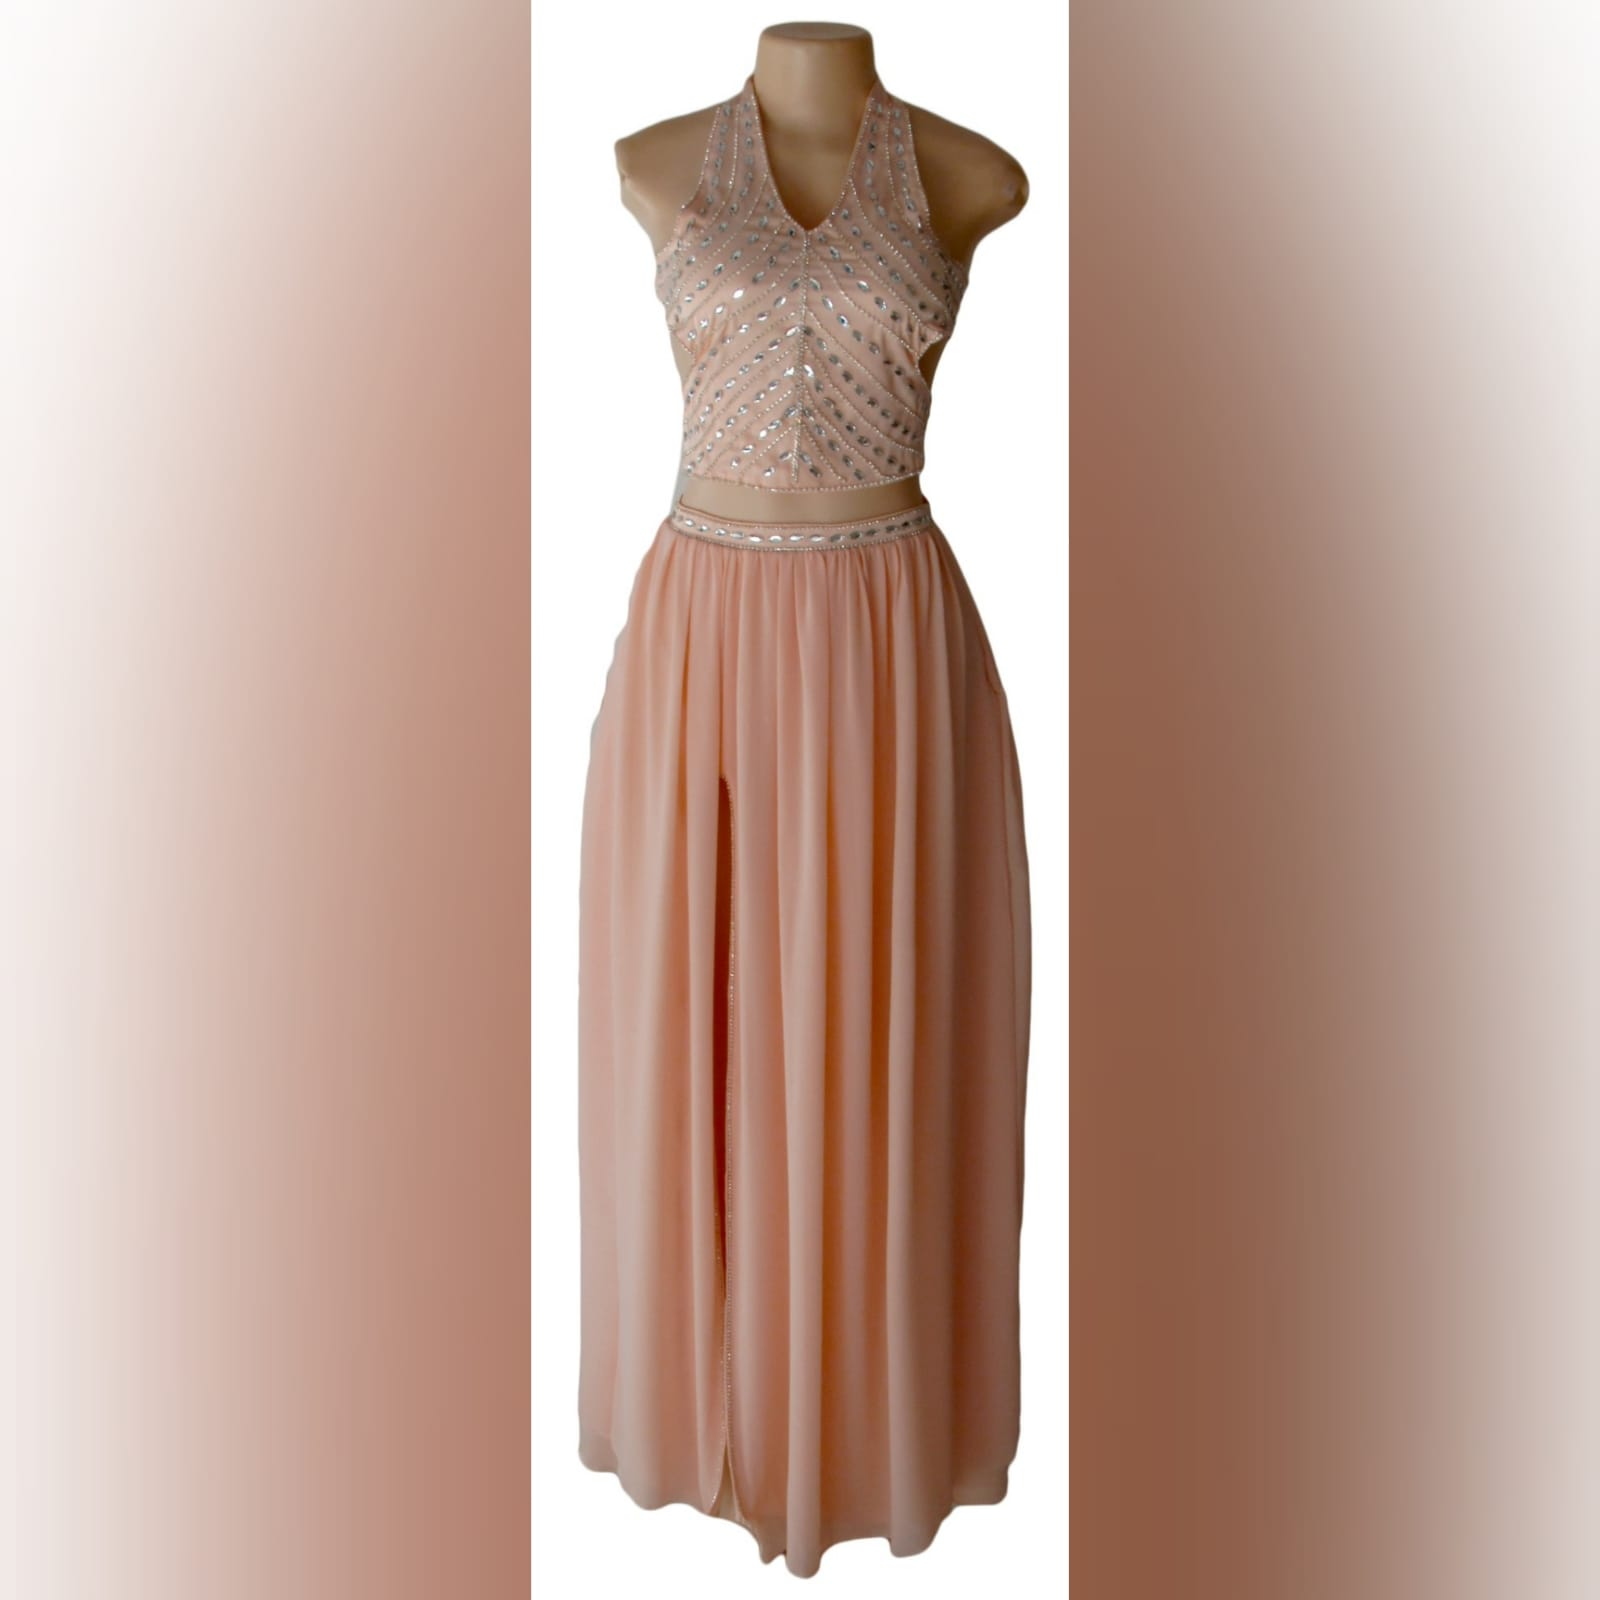 Pink nude 2 piece prom dress 6 pink nude 2 piece prom dress with crop top open on the sides, halter neck creating a v neckline with a naked back detailed with straps. Top detailed with patterned silver beading. Flowy long skirt with a slit and waistband detailed with silver beads.